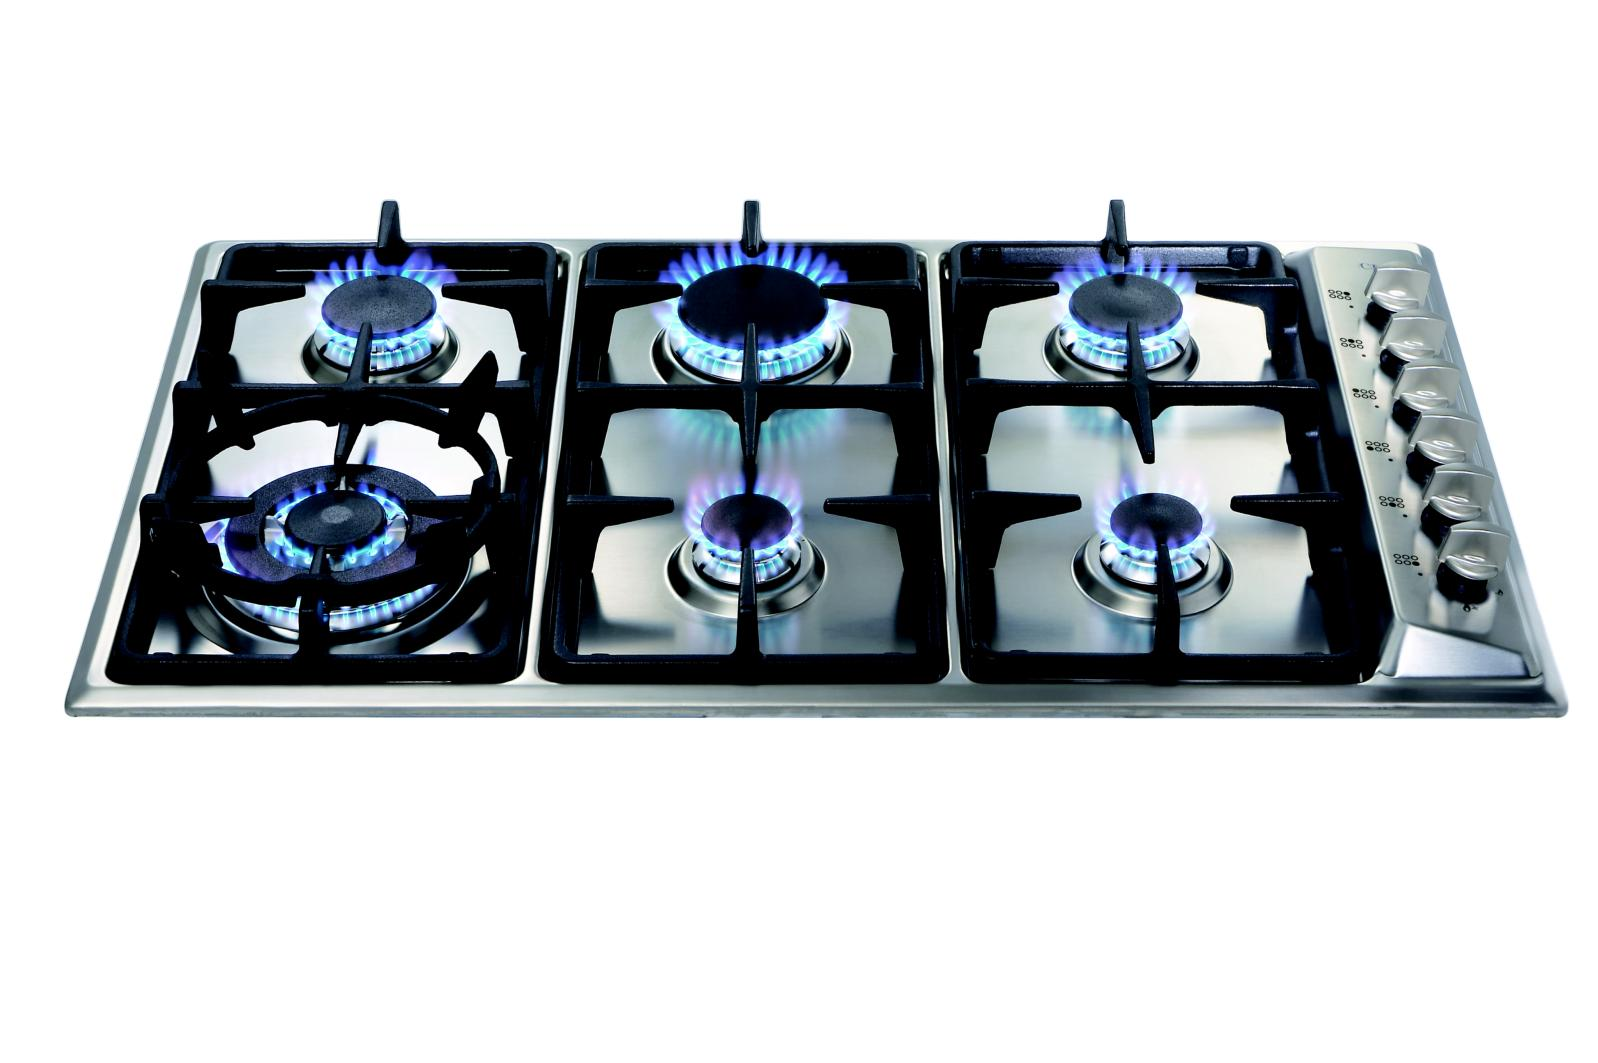 Gas Burners For Boilers : Gas burners manufacturers b marketing news